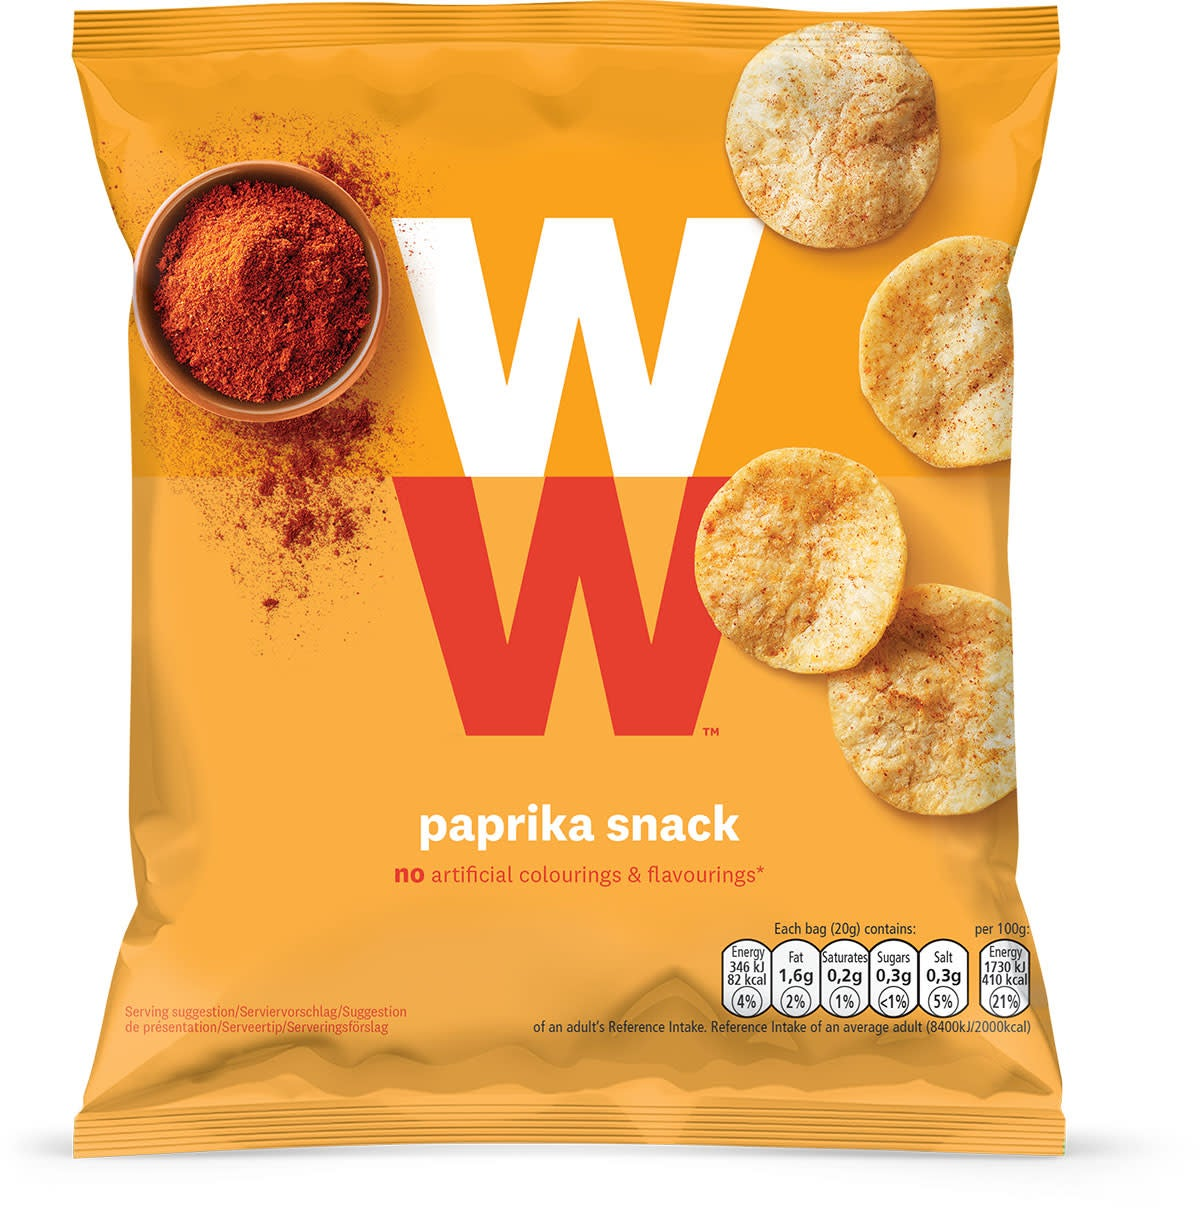 WW Crunchy potato based snack, paprika flavoured, baked not fried, only 2 SmartPoints values per bag, light and tasty, suitable for vegans